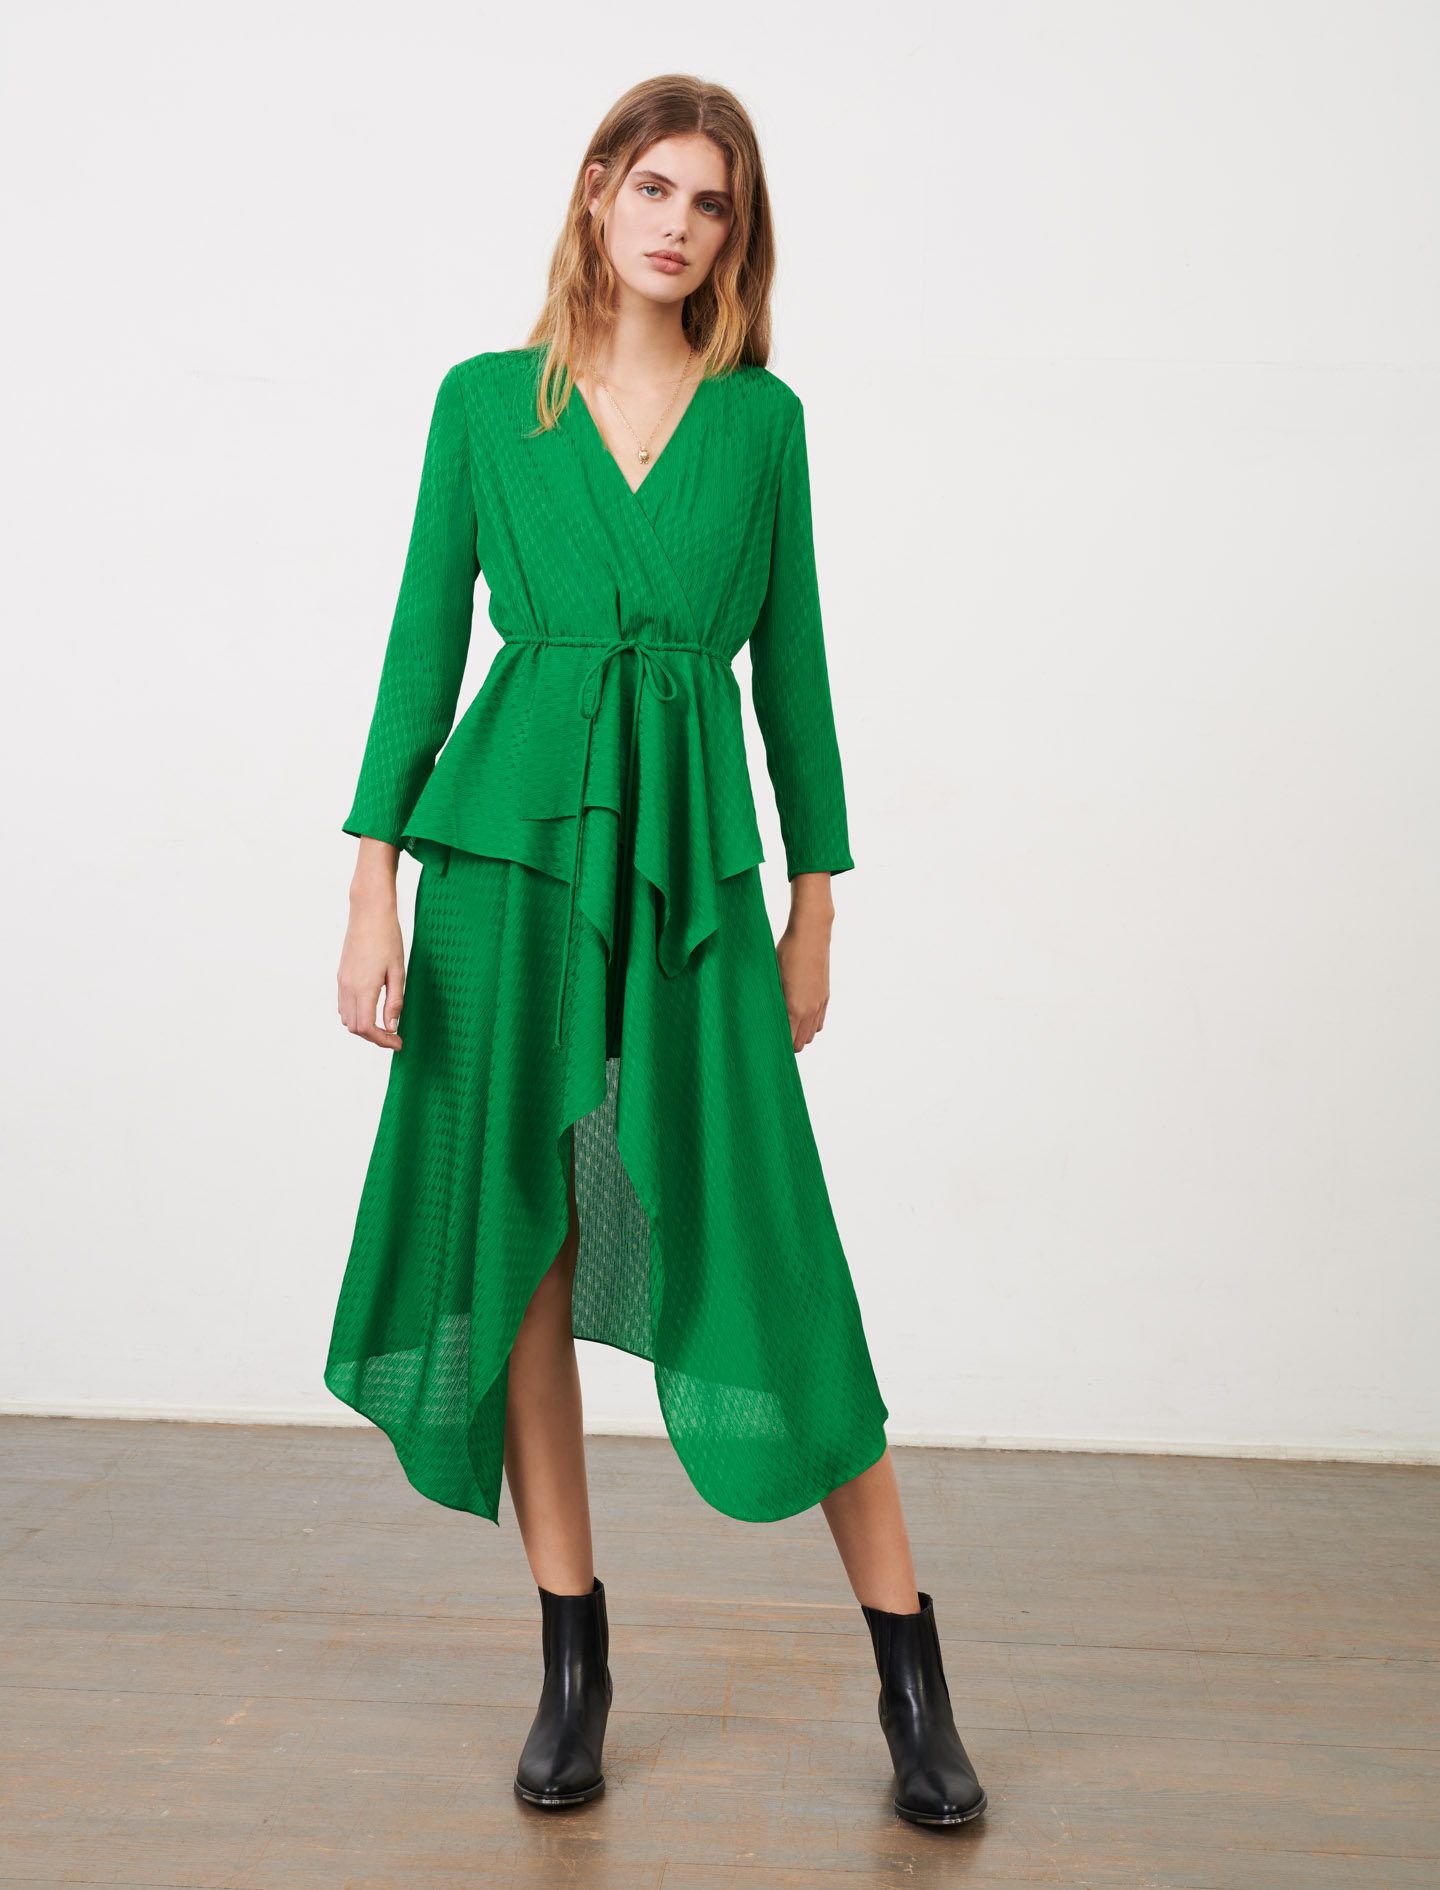 Green midi dress with asymmetrical skirt - Green